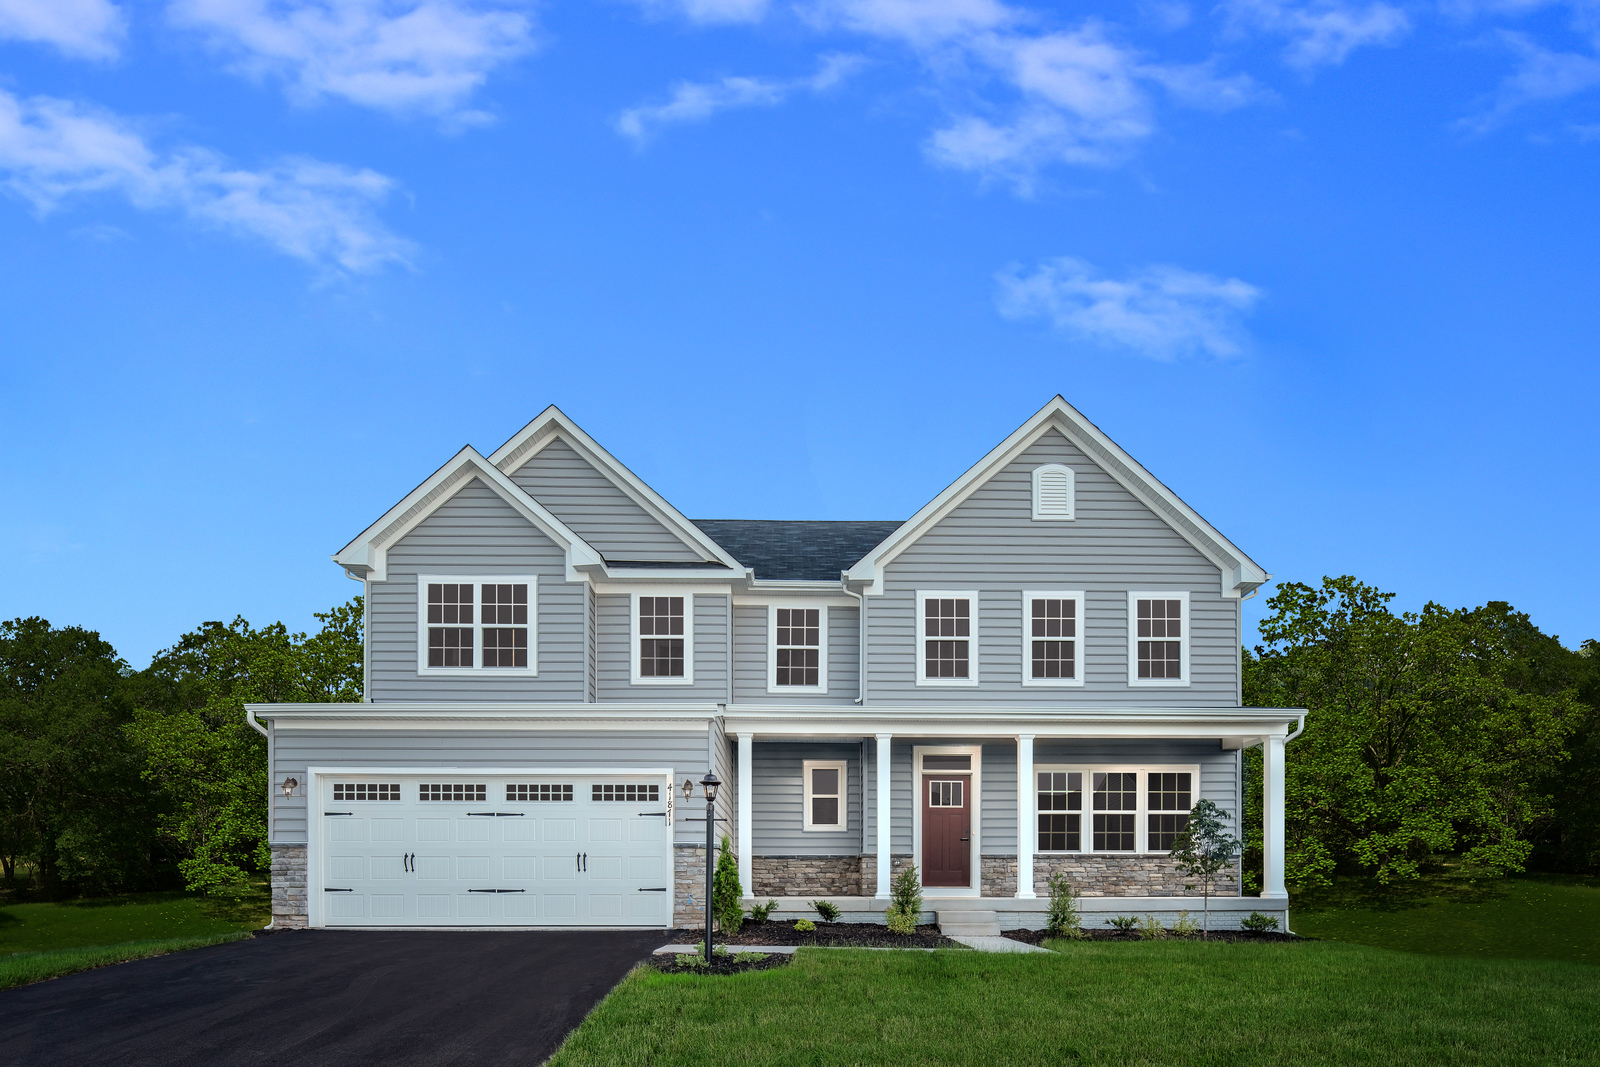 New Homes For Sale At Auburn Meadows In Farmington Ny Within The